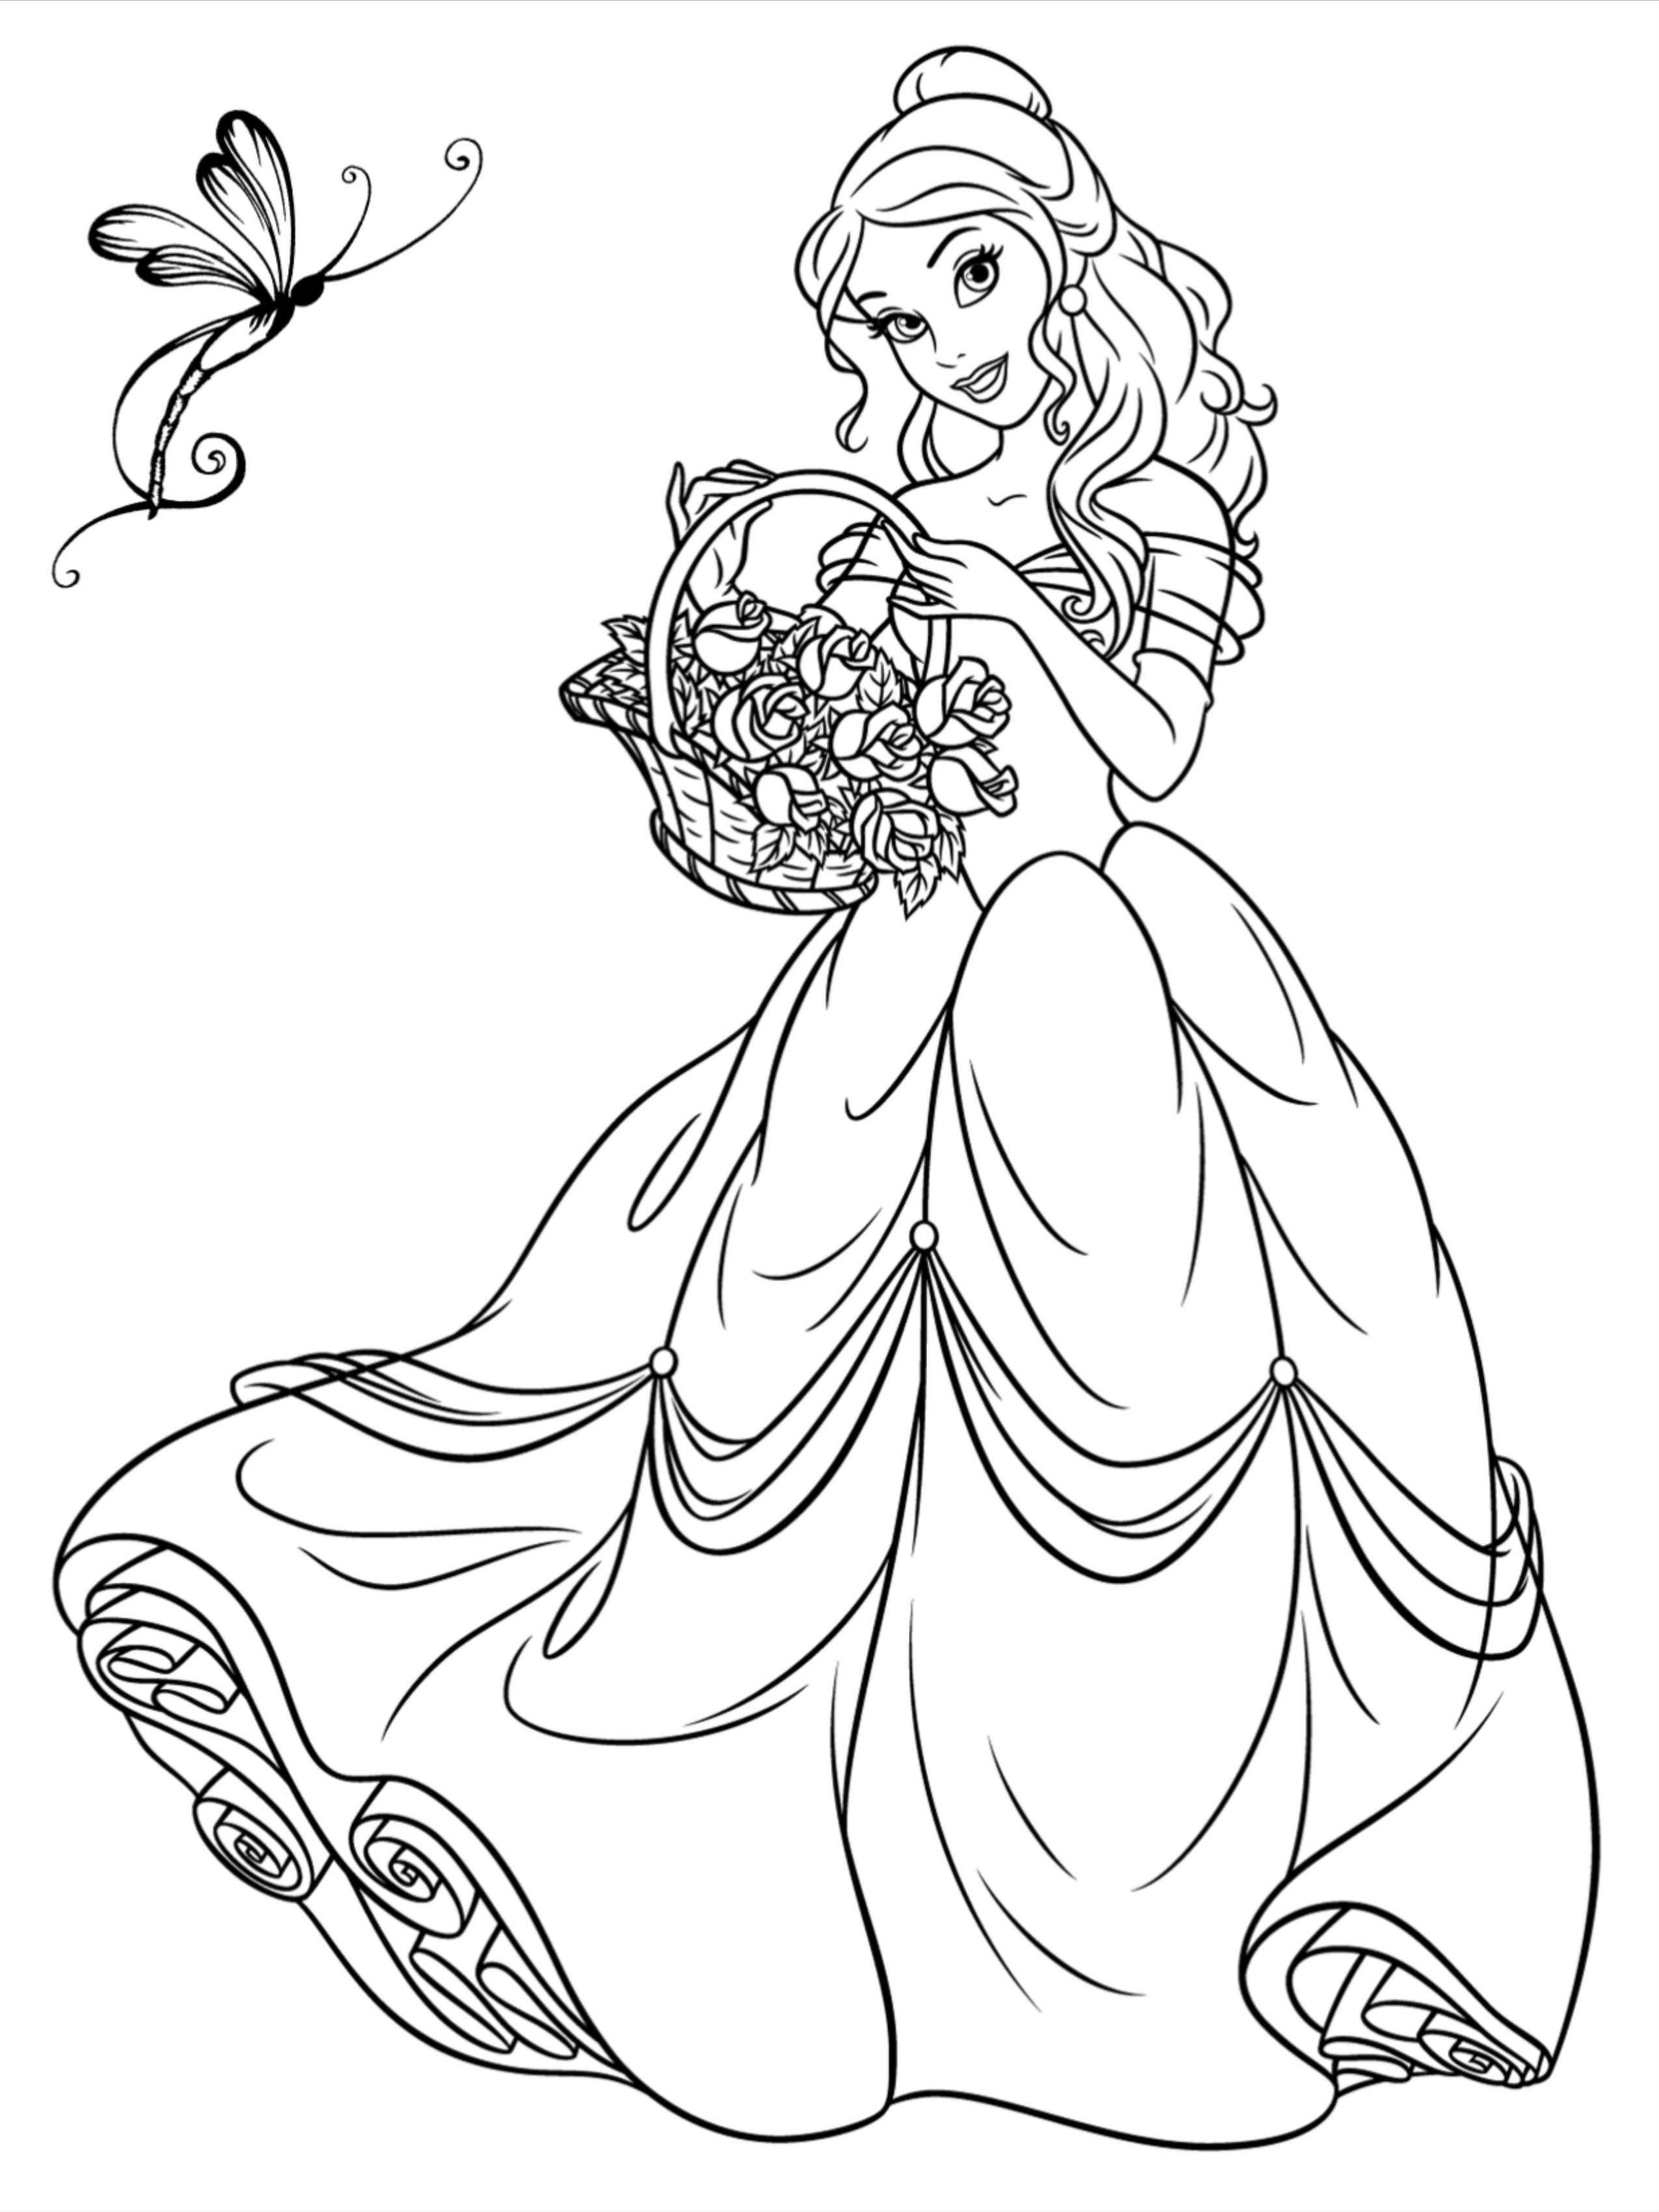 100 Princess Coloring Pages For Kids Disney Princess Coloring Pages Princess Coloring Princess Coloring Pages